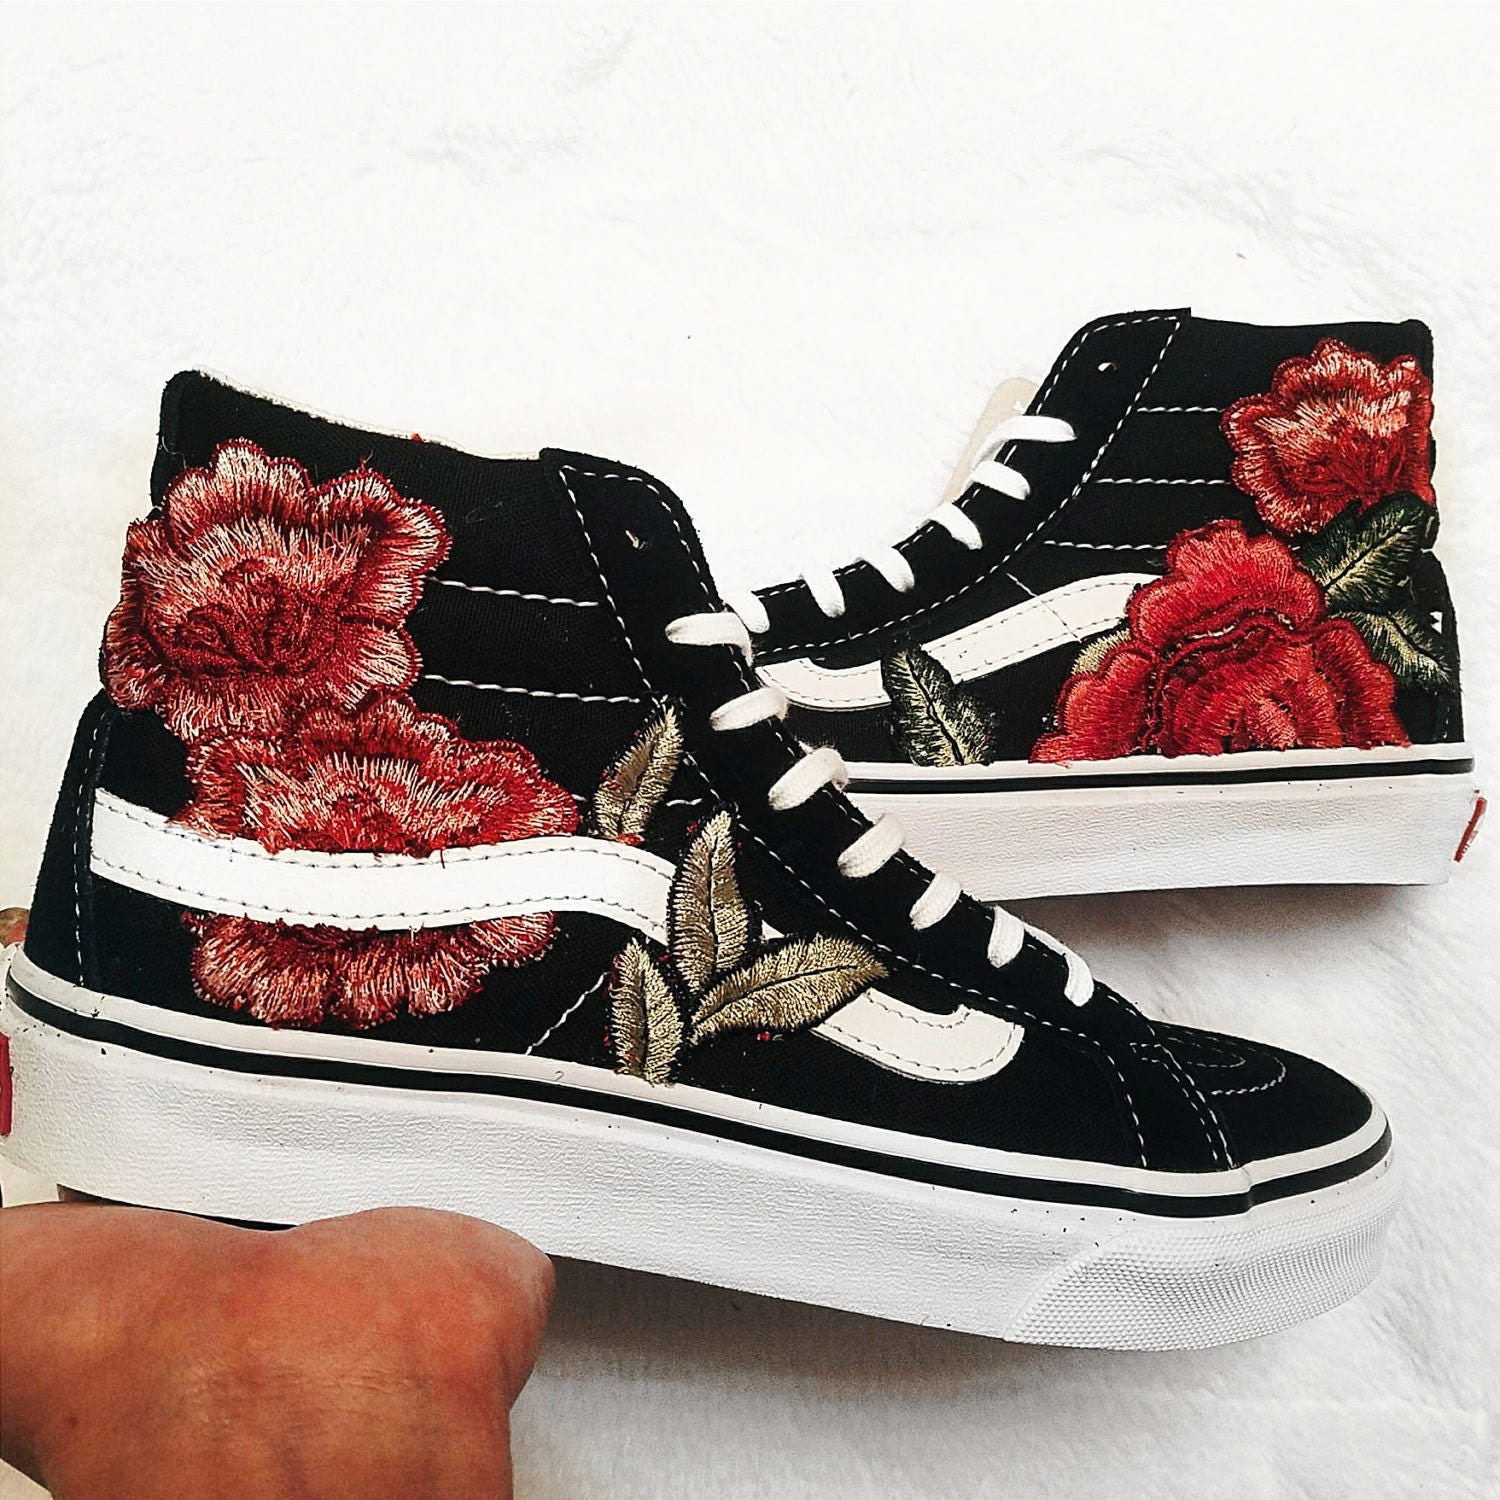 Womens custom rose floral embroidered patch vans sk hi slim